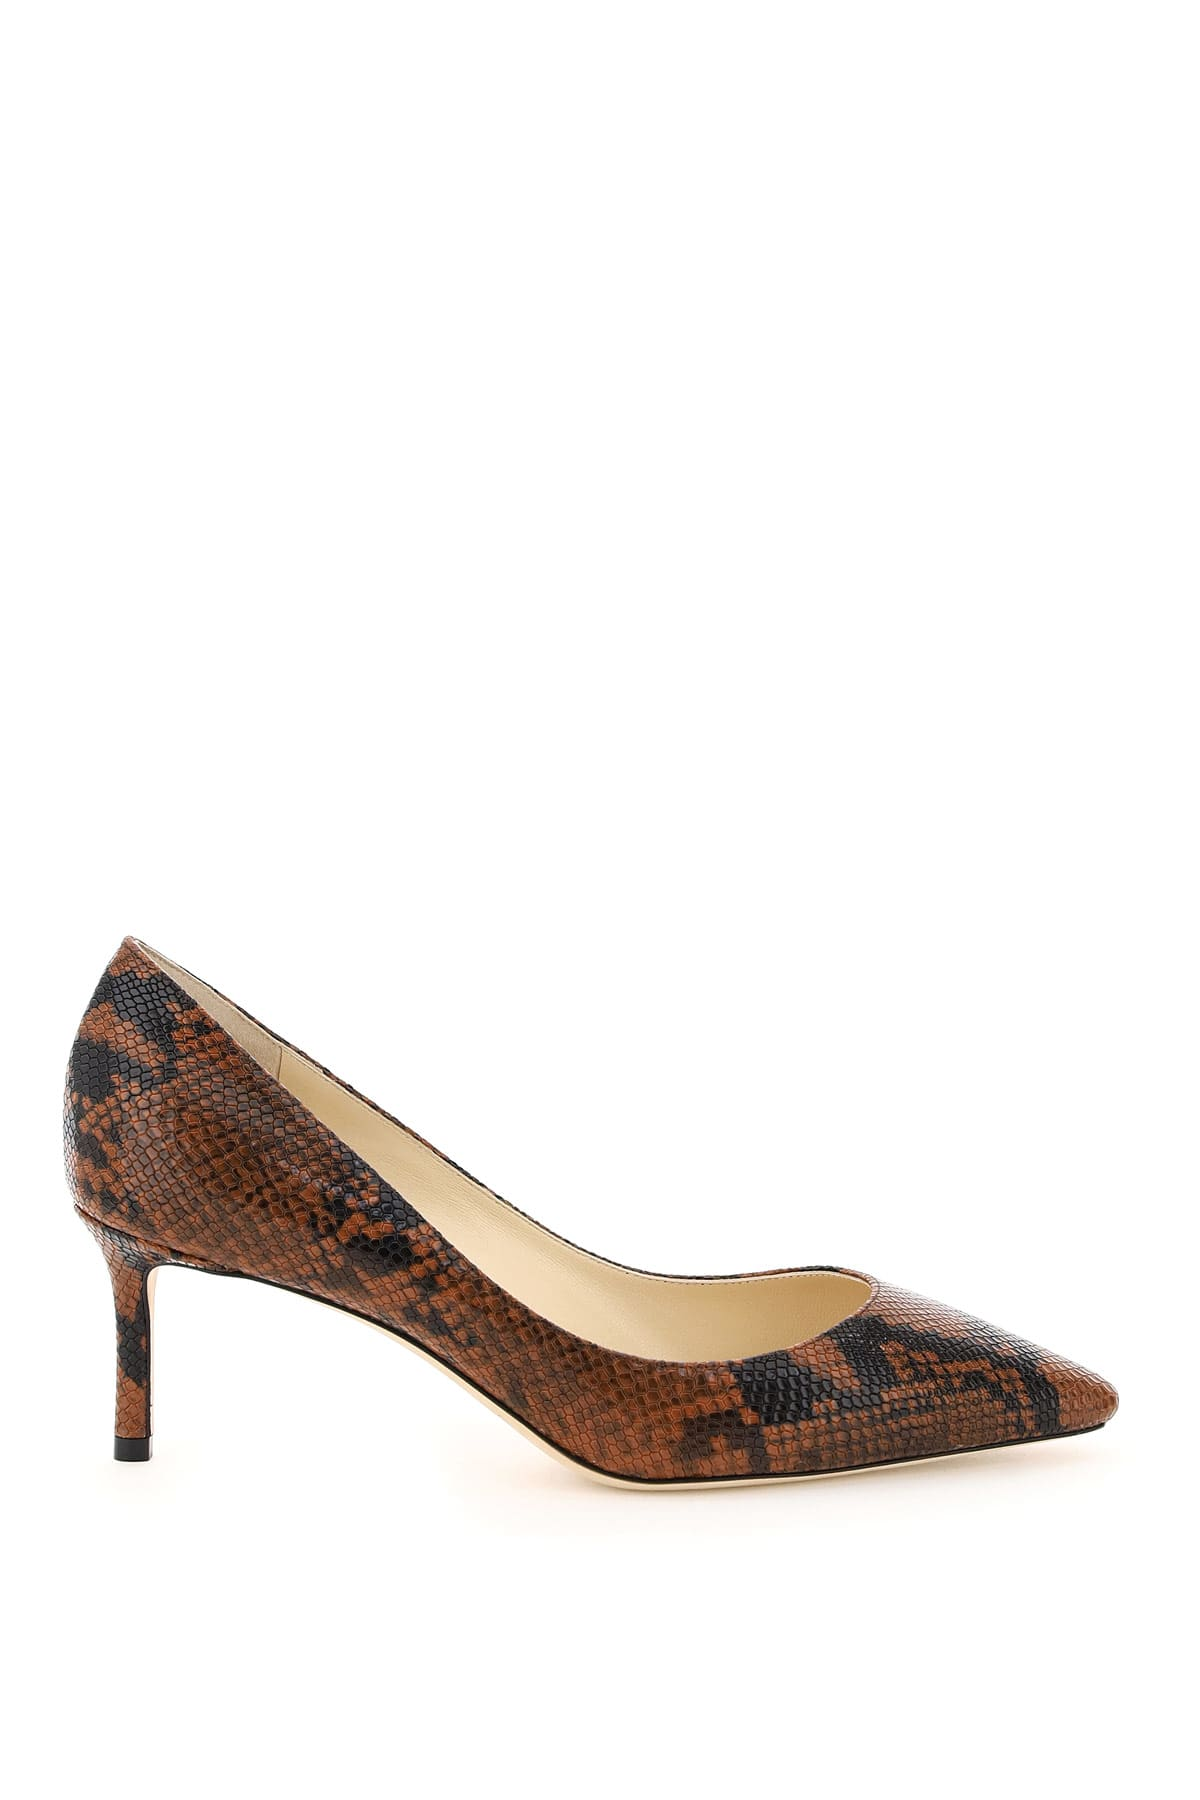 Jimmy Choo Leathers ROMY 60 PYTHON PRINT LEATHER PUMPS